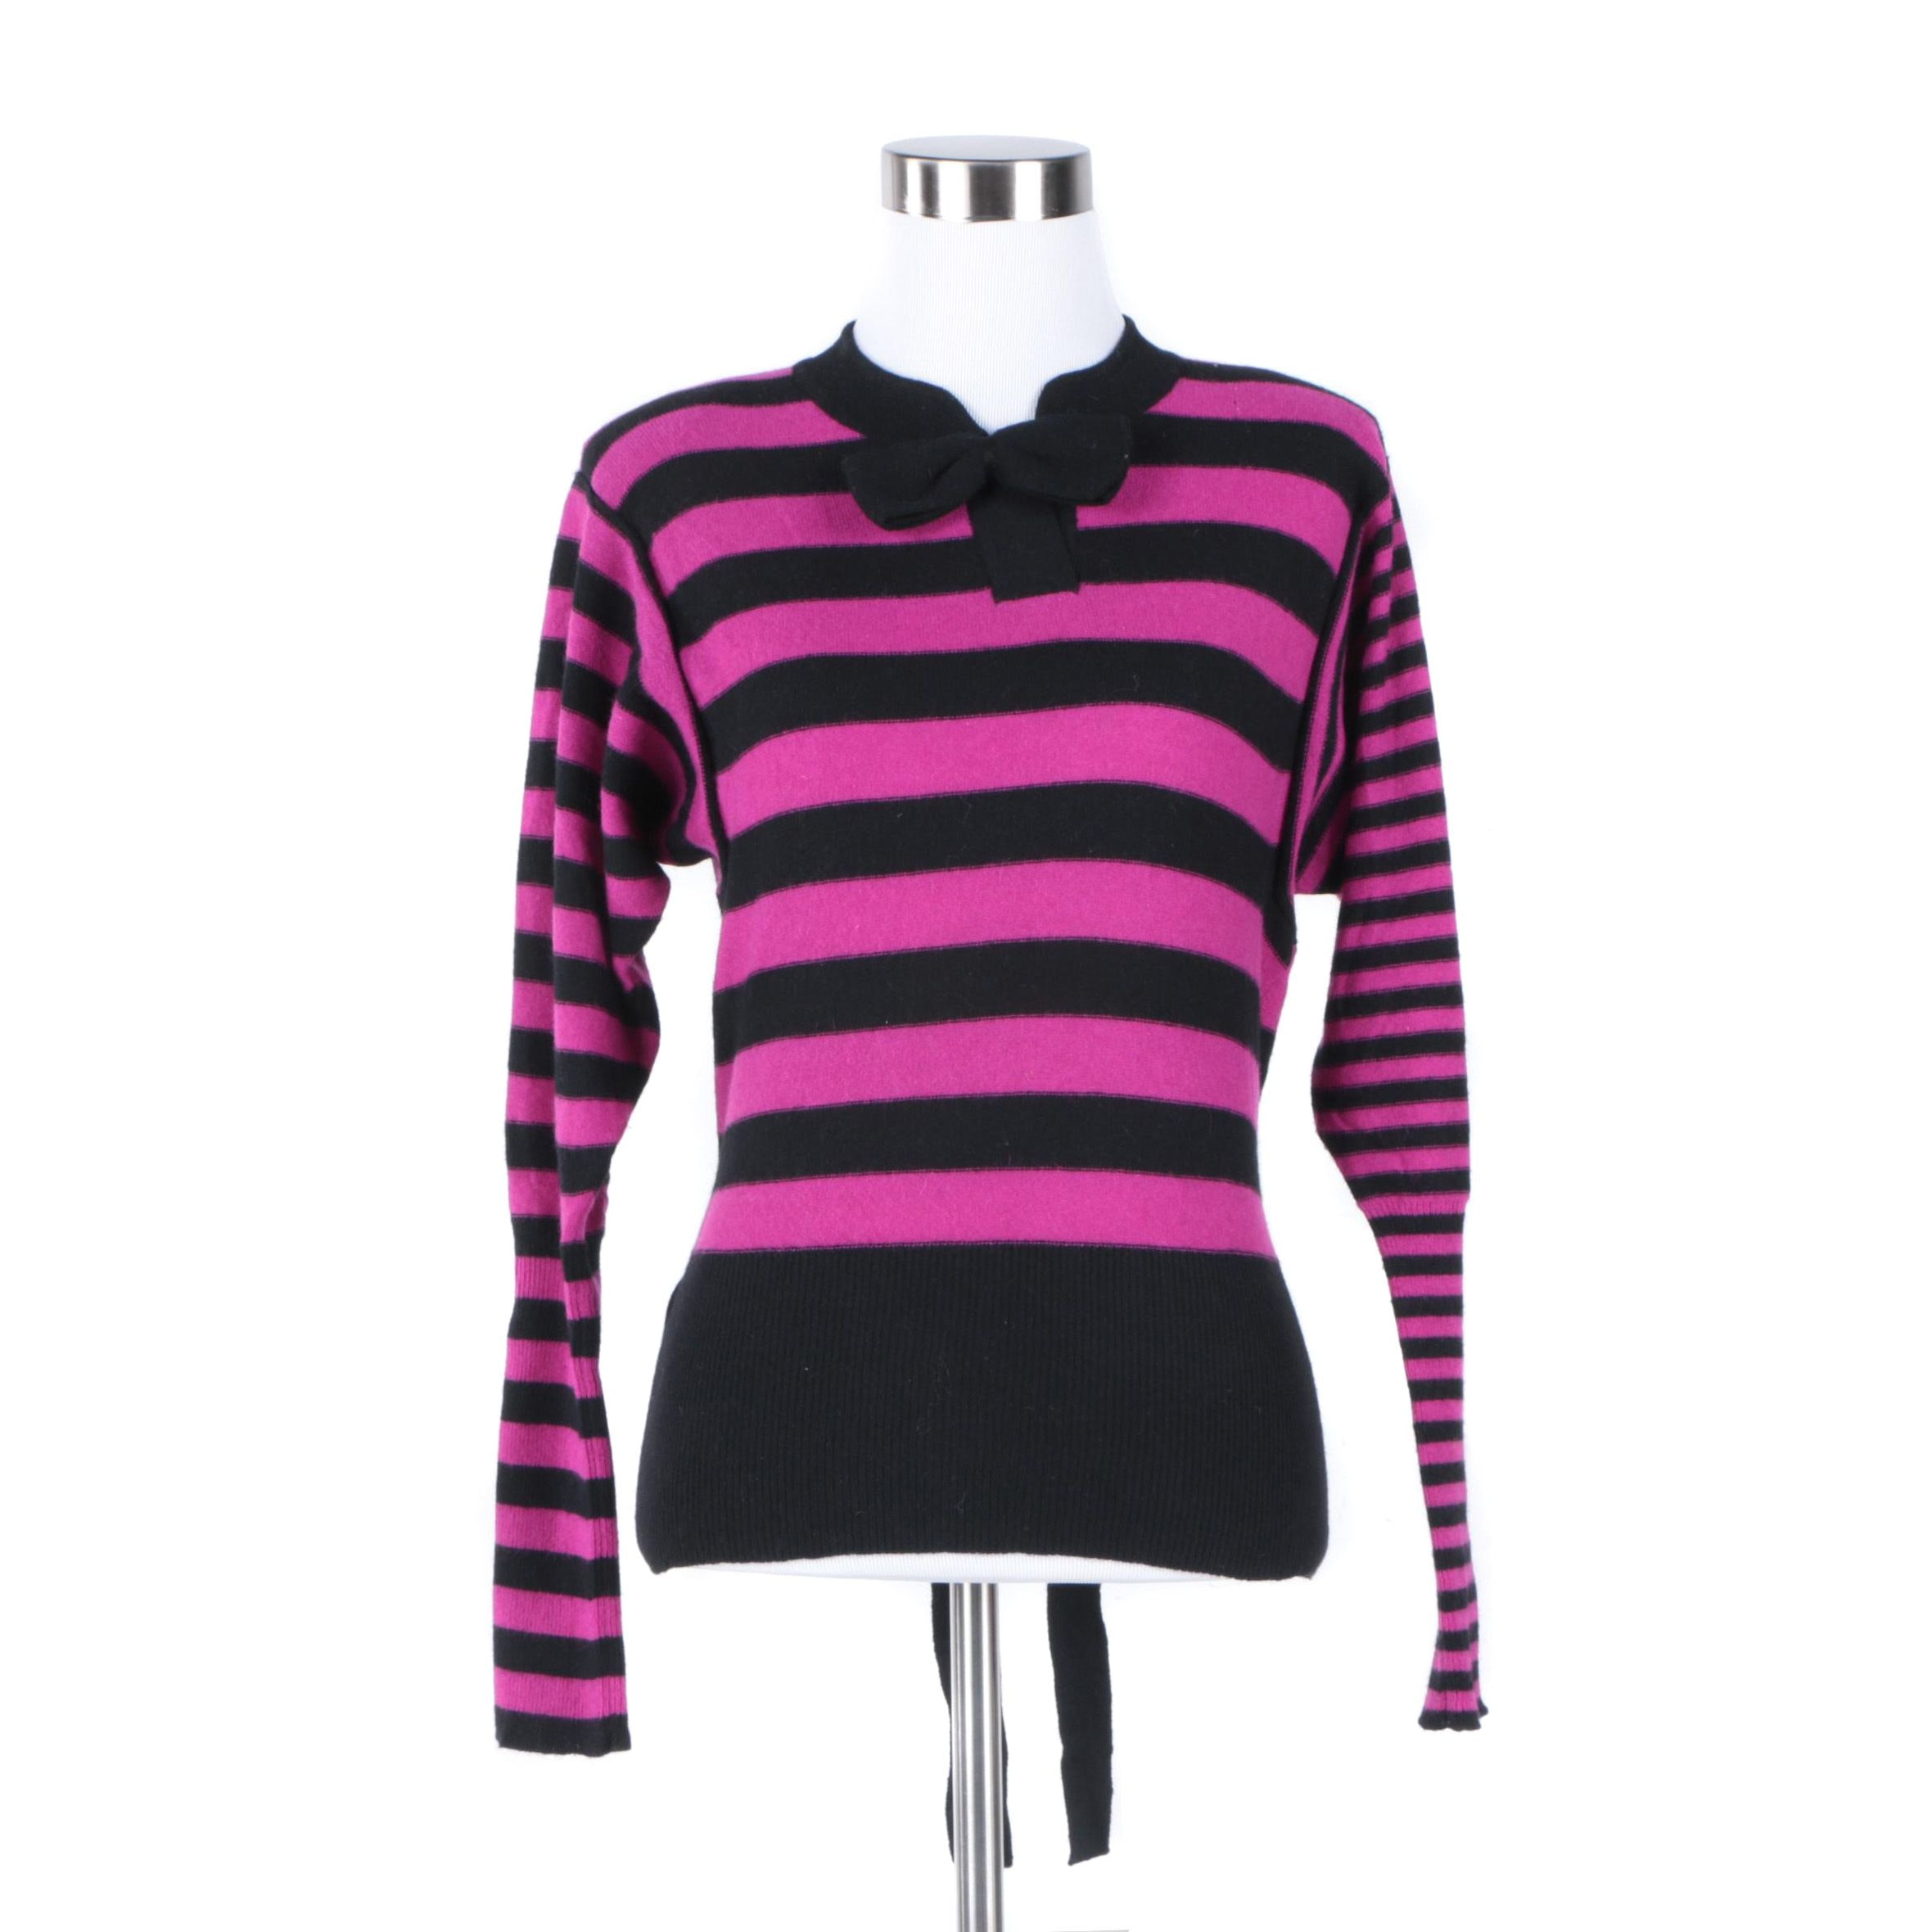 Women's Sonia Rykiel Black and Pink Sweater